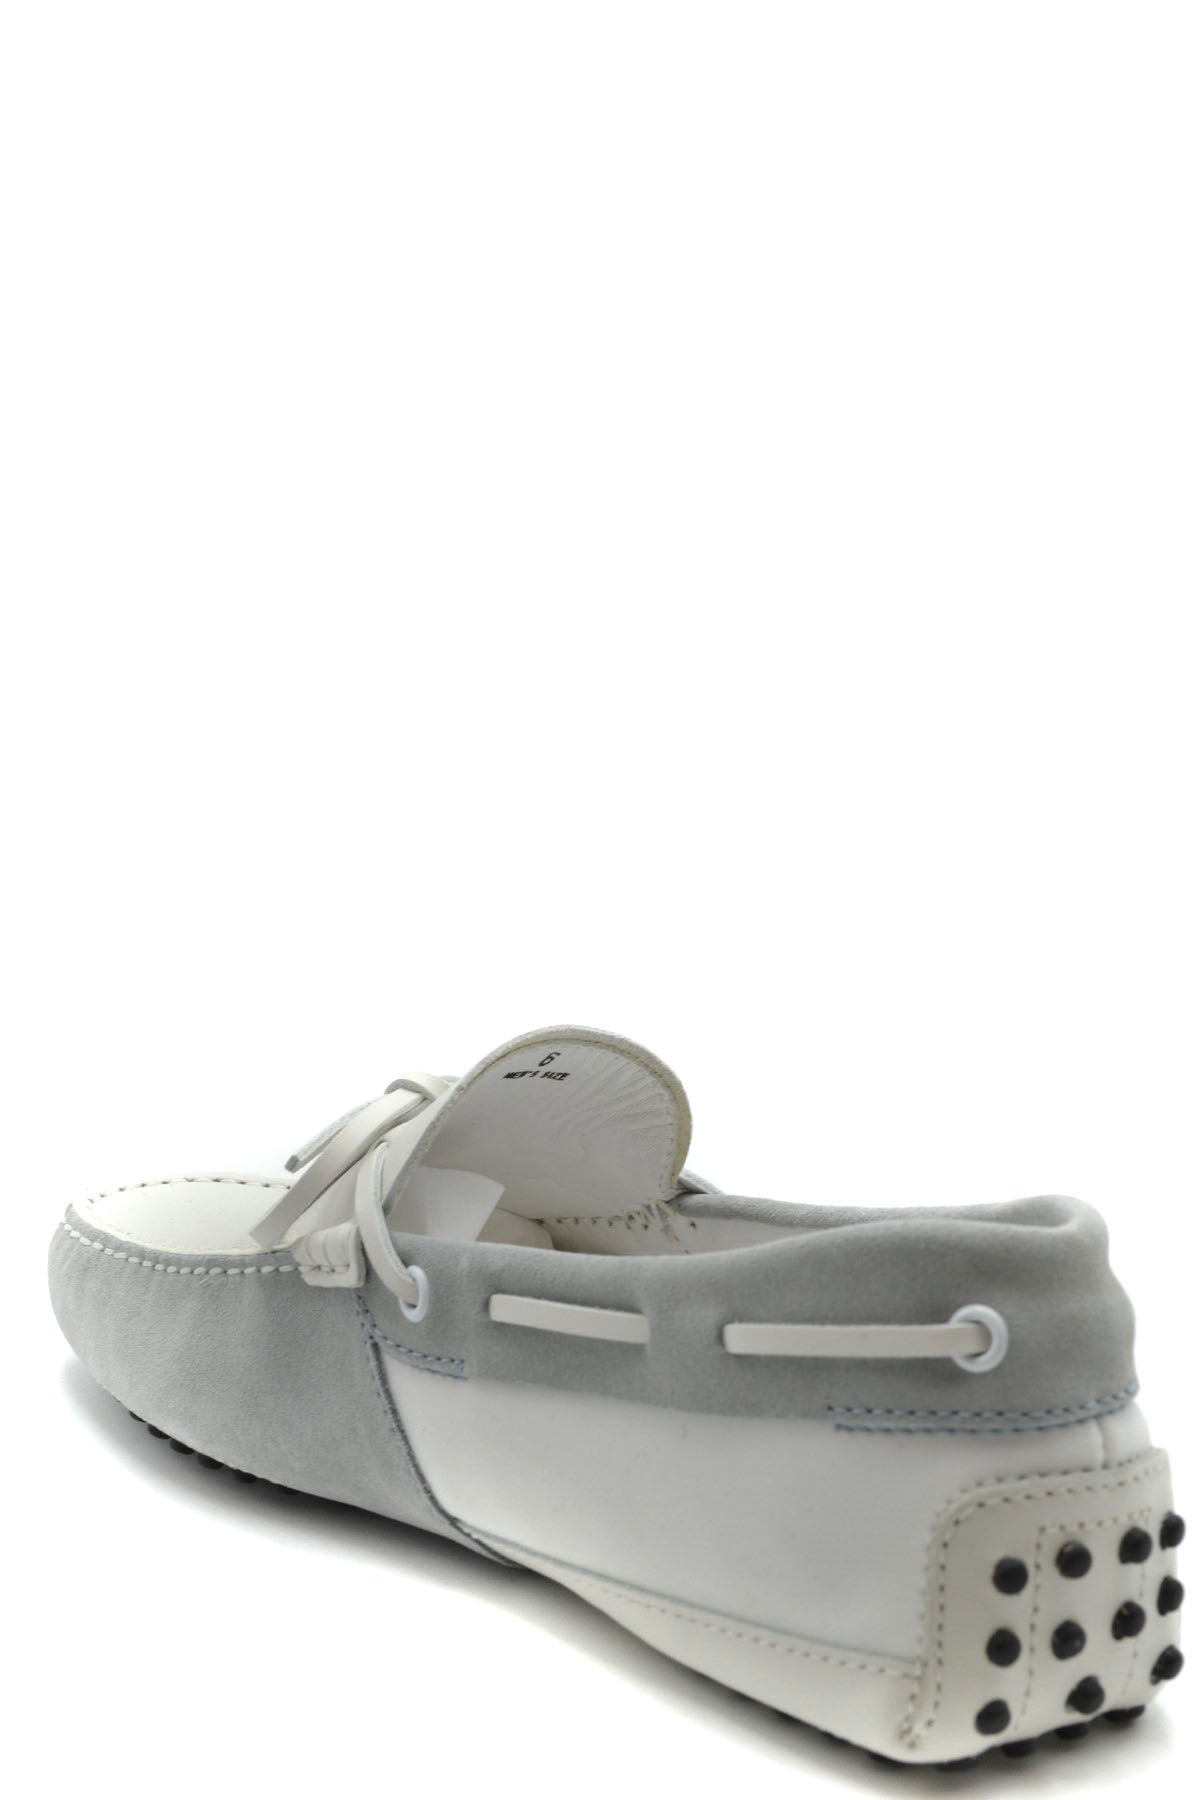 Shoes Tod'S--Product Details Type Of Accessory: ShoesTerms: New With LabelYear: 2019Main Color: GrayGender: ManMade In: ItalyManufacturer Part Number: Xxm0Gw0X900Iun0ZyvSize: UkSeason: Spring / SummerComposition: Leather 100%-Keyomi-Sook